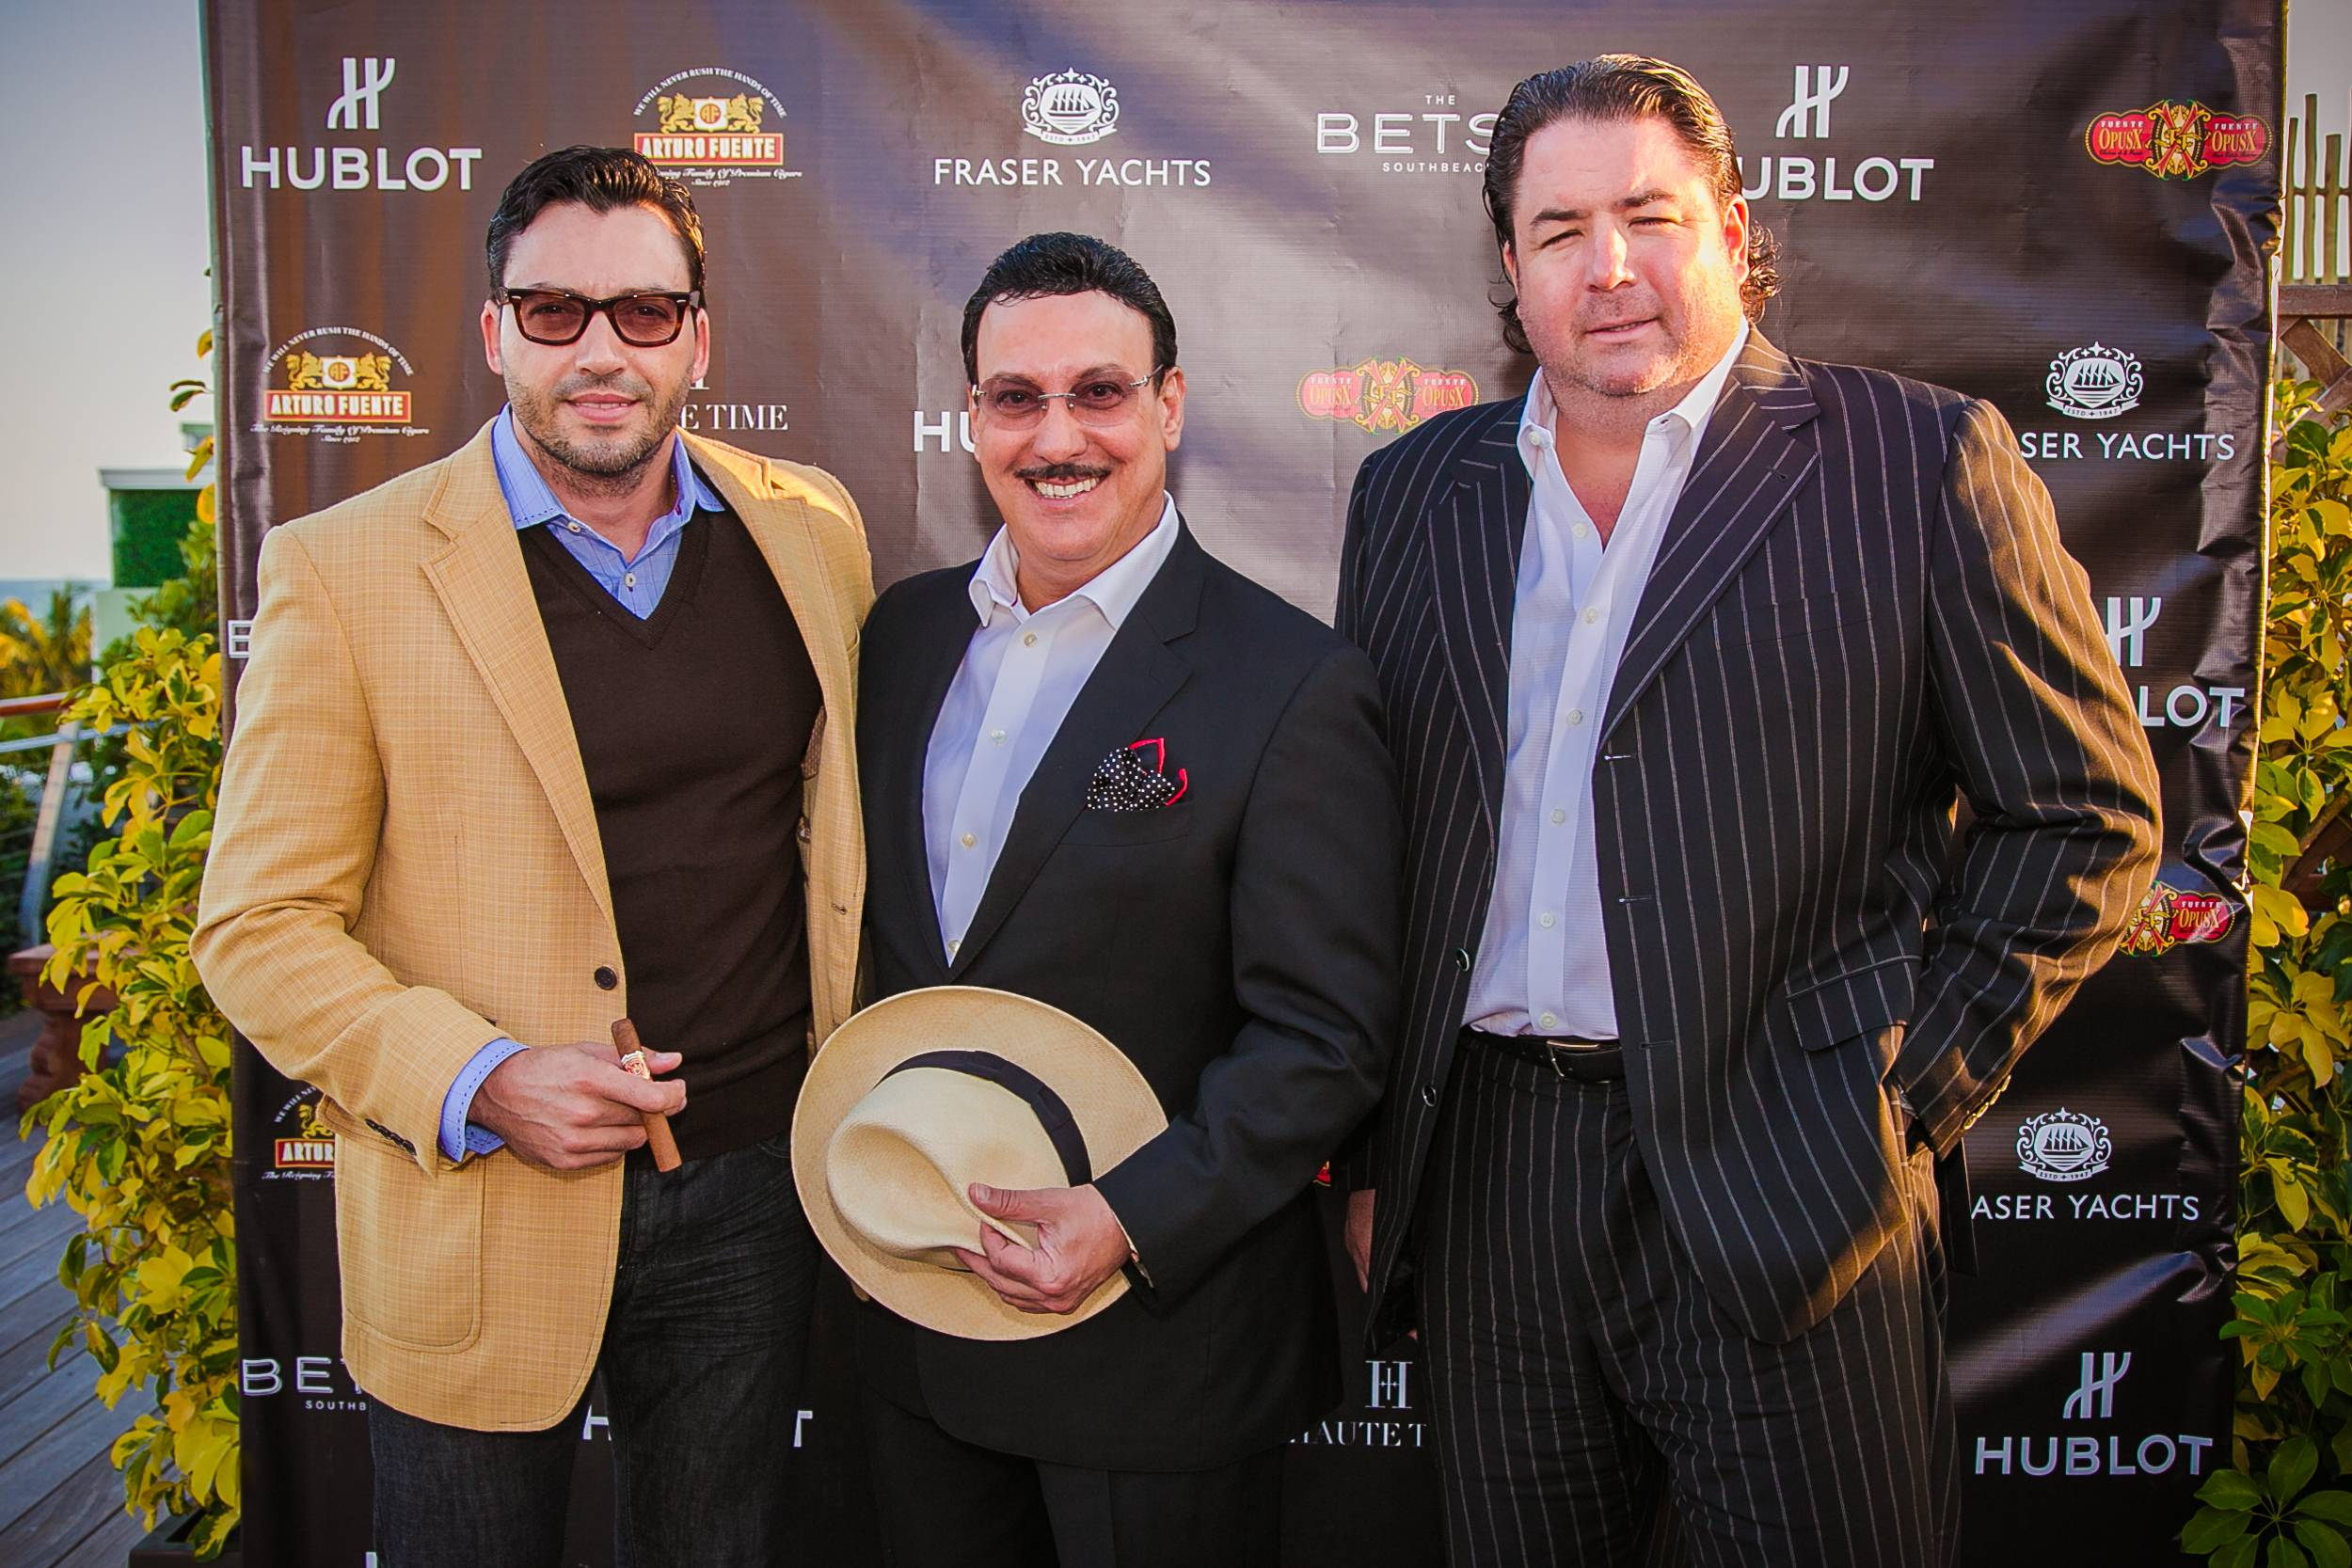 Manny Iriarte, of Iriarte Photography & Design, Carlos Fuente Jr, president of Arturo Fuente Cigars and Michael Bulnes, of Selecta Magazine